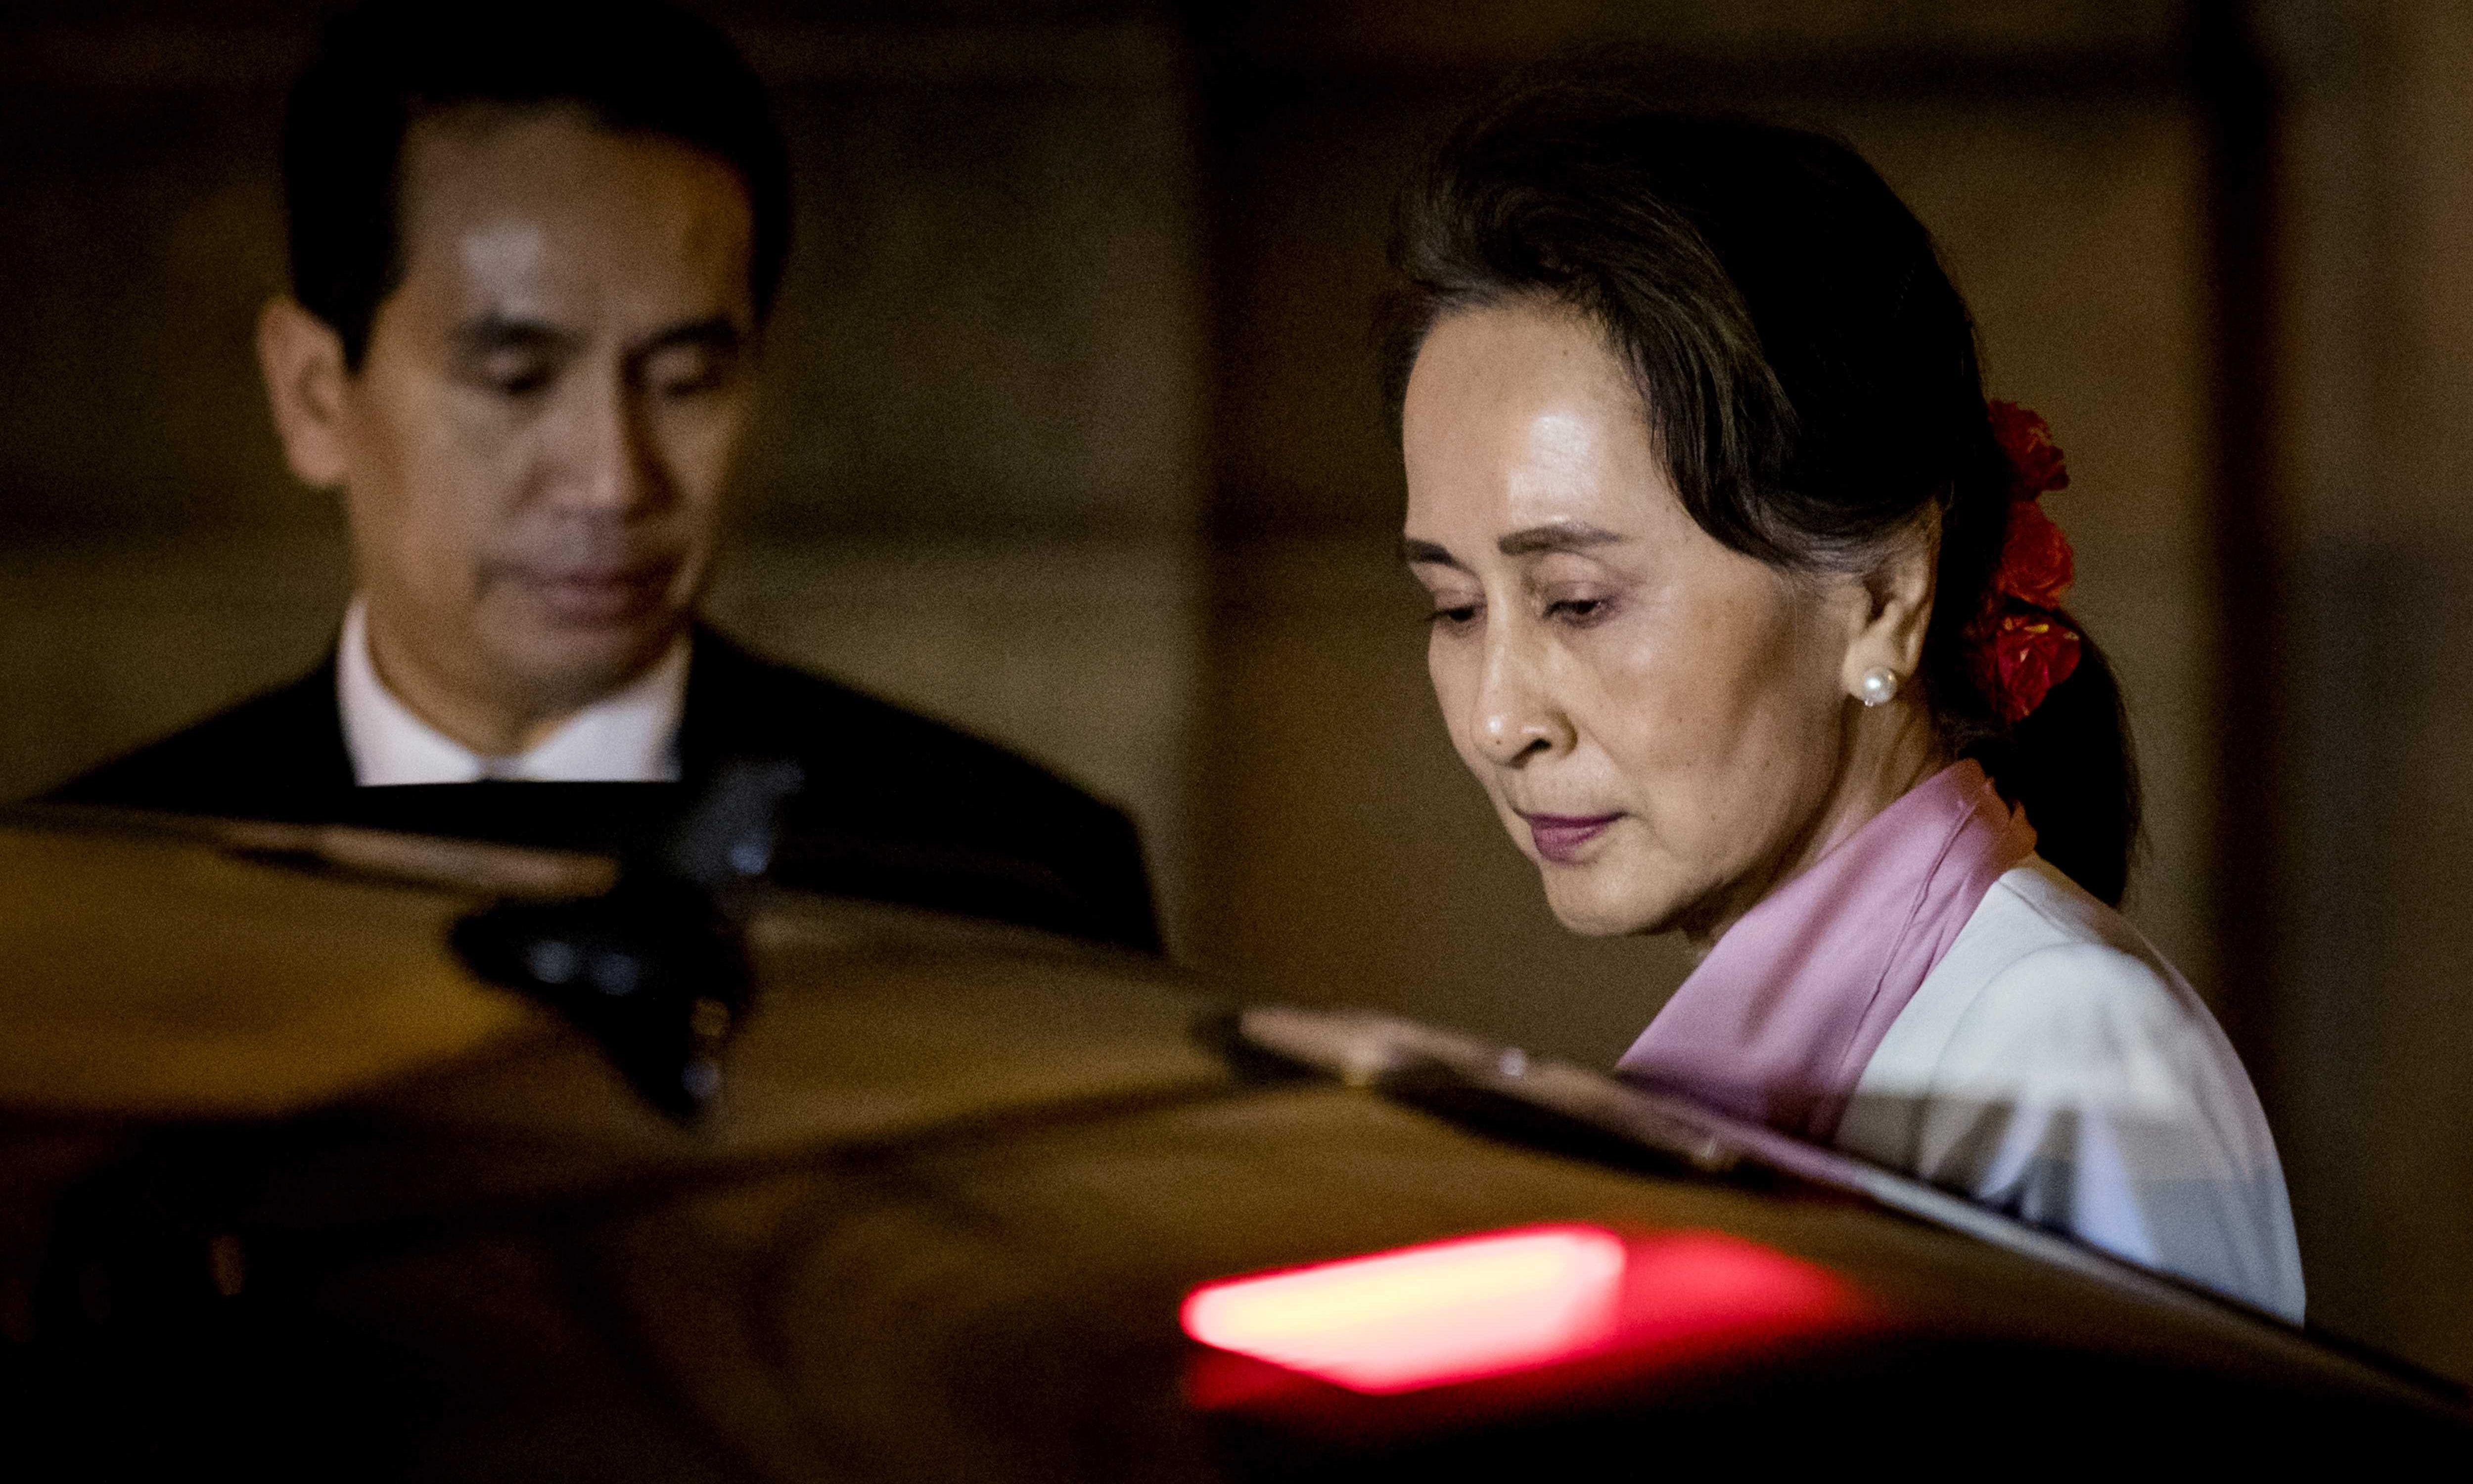 The Guardian view on Myanmar and genocide: humanity on trial